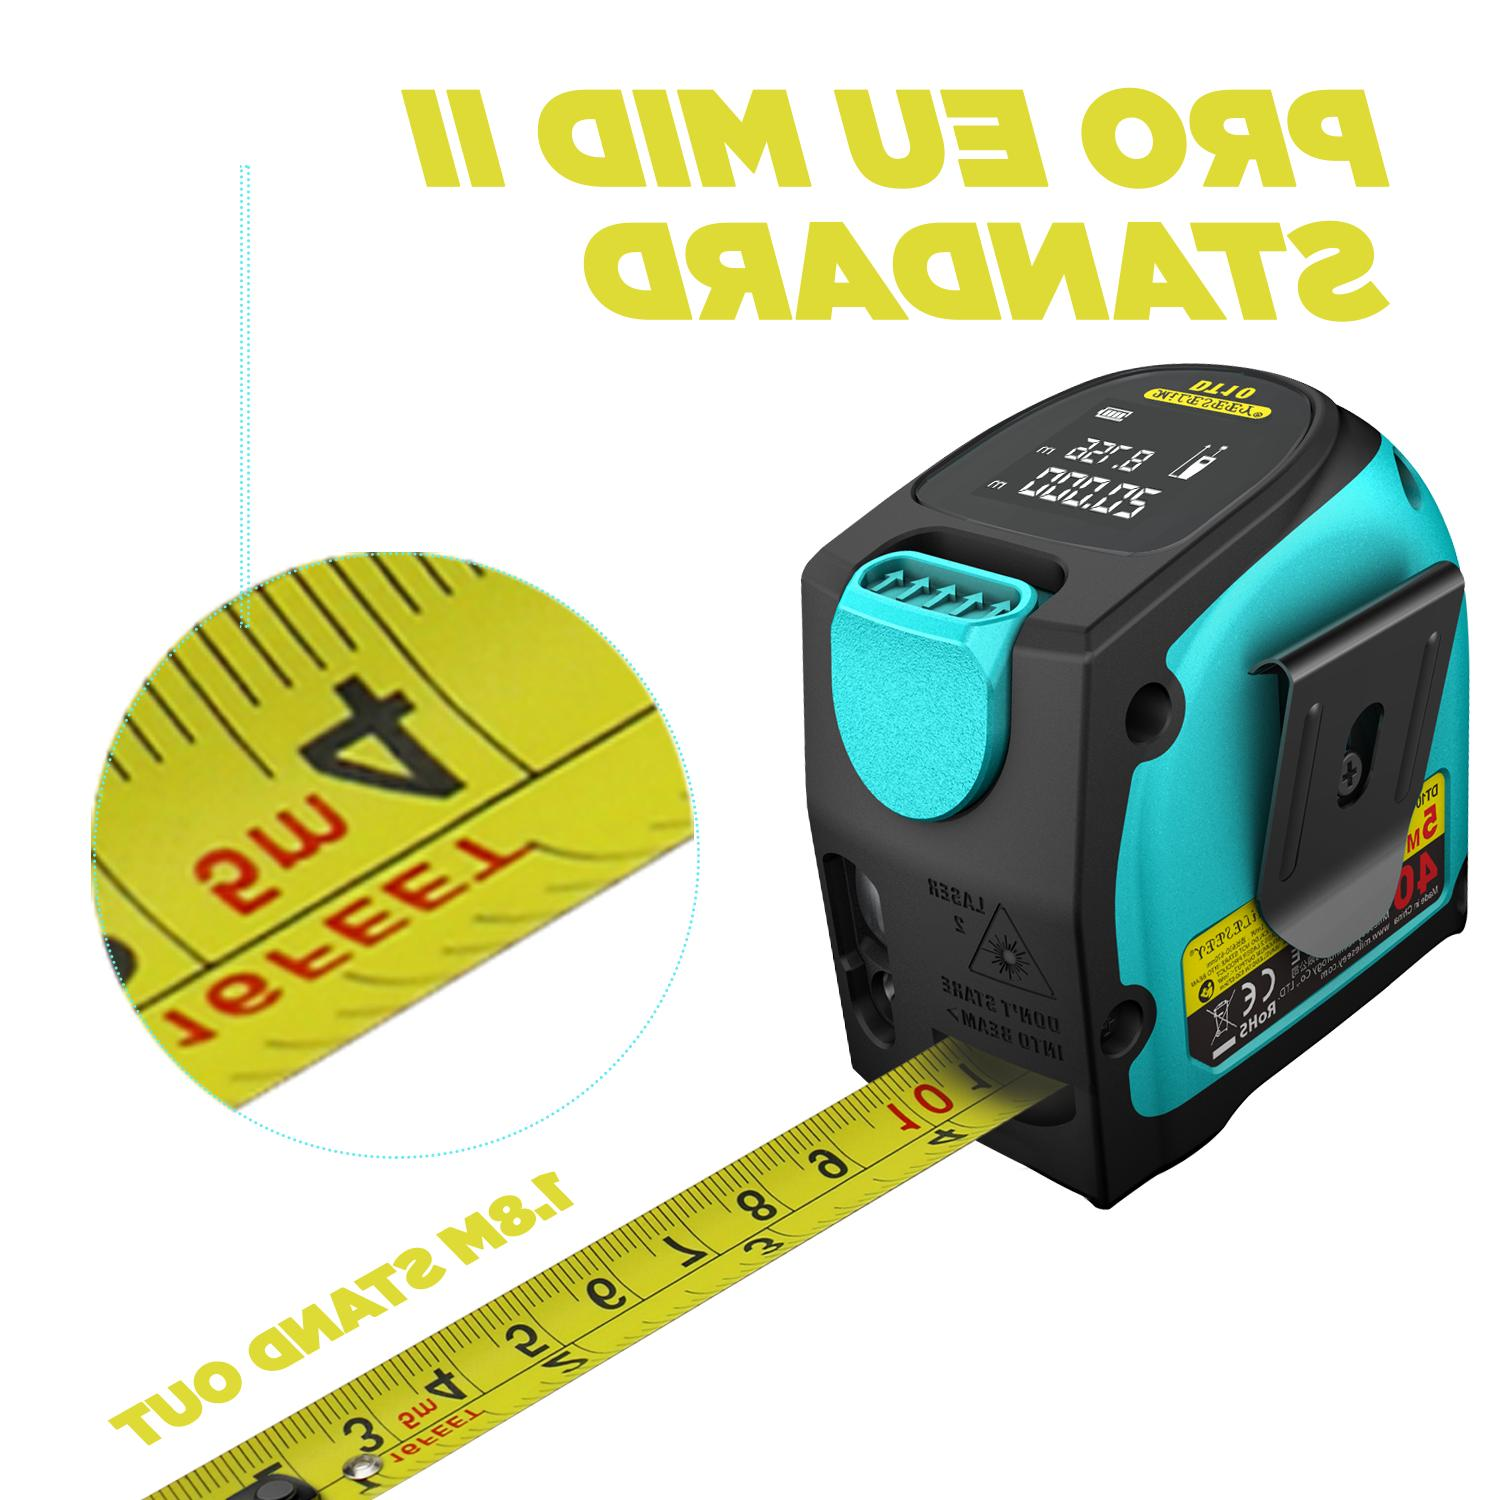 Mileseey 2-in-1 Laser Meter 197 Ft USA